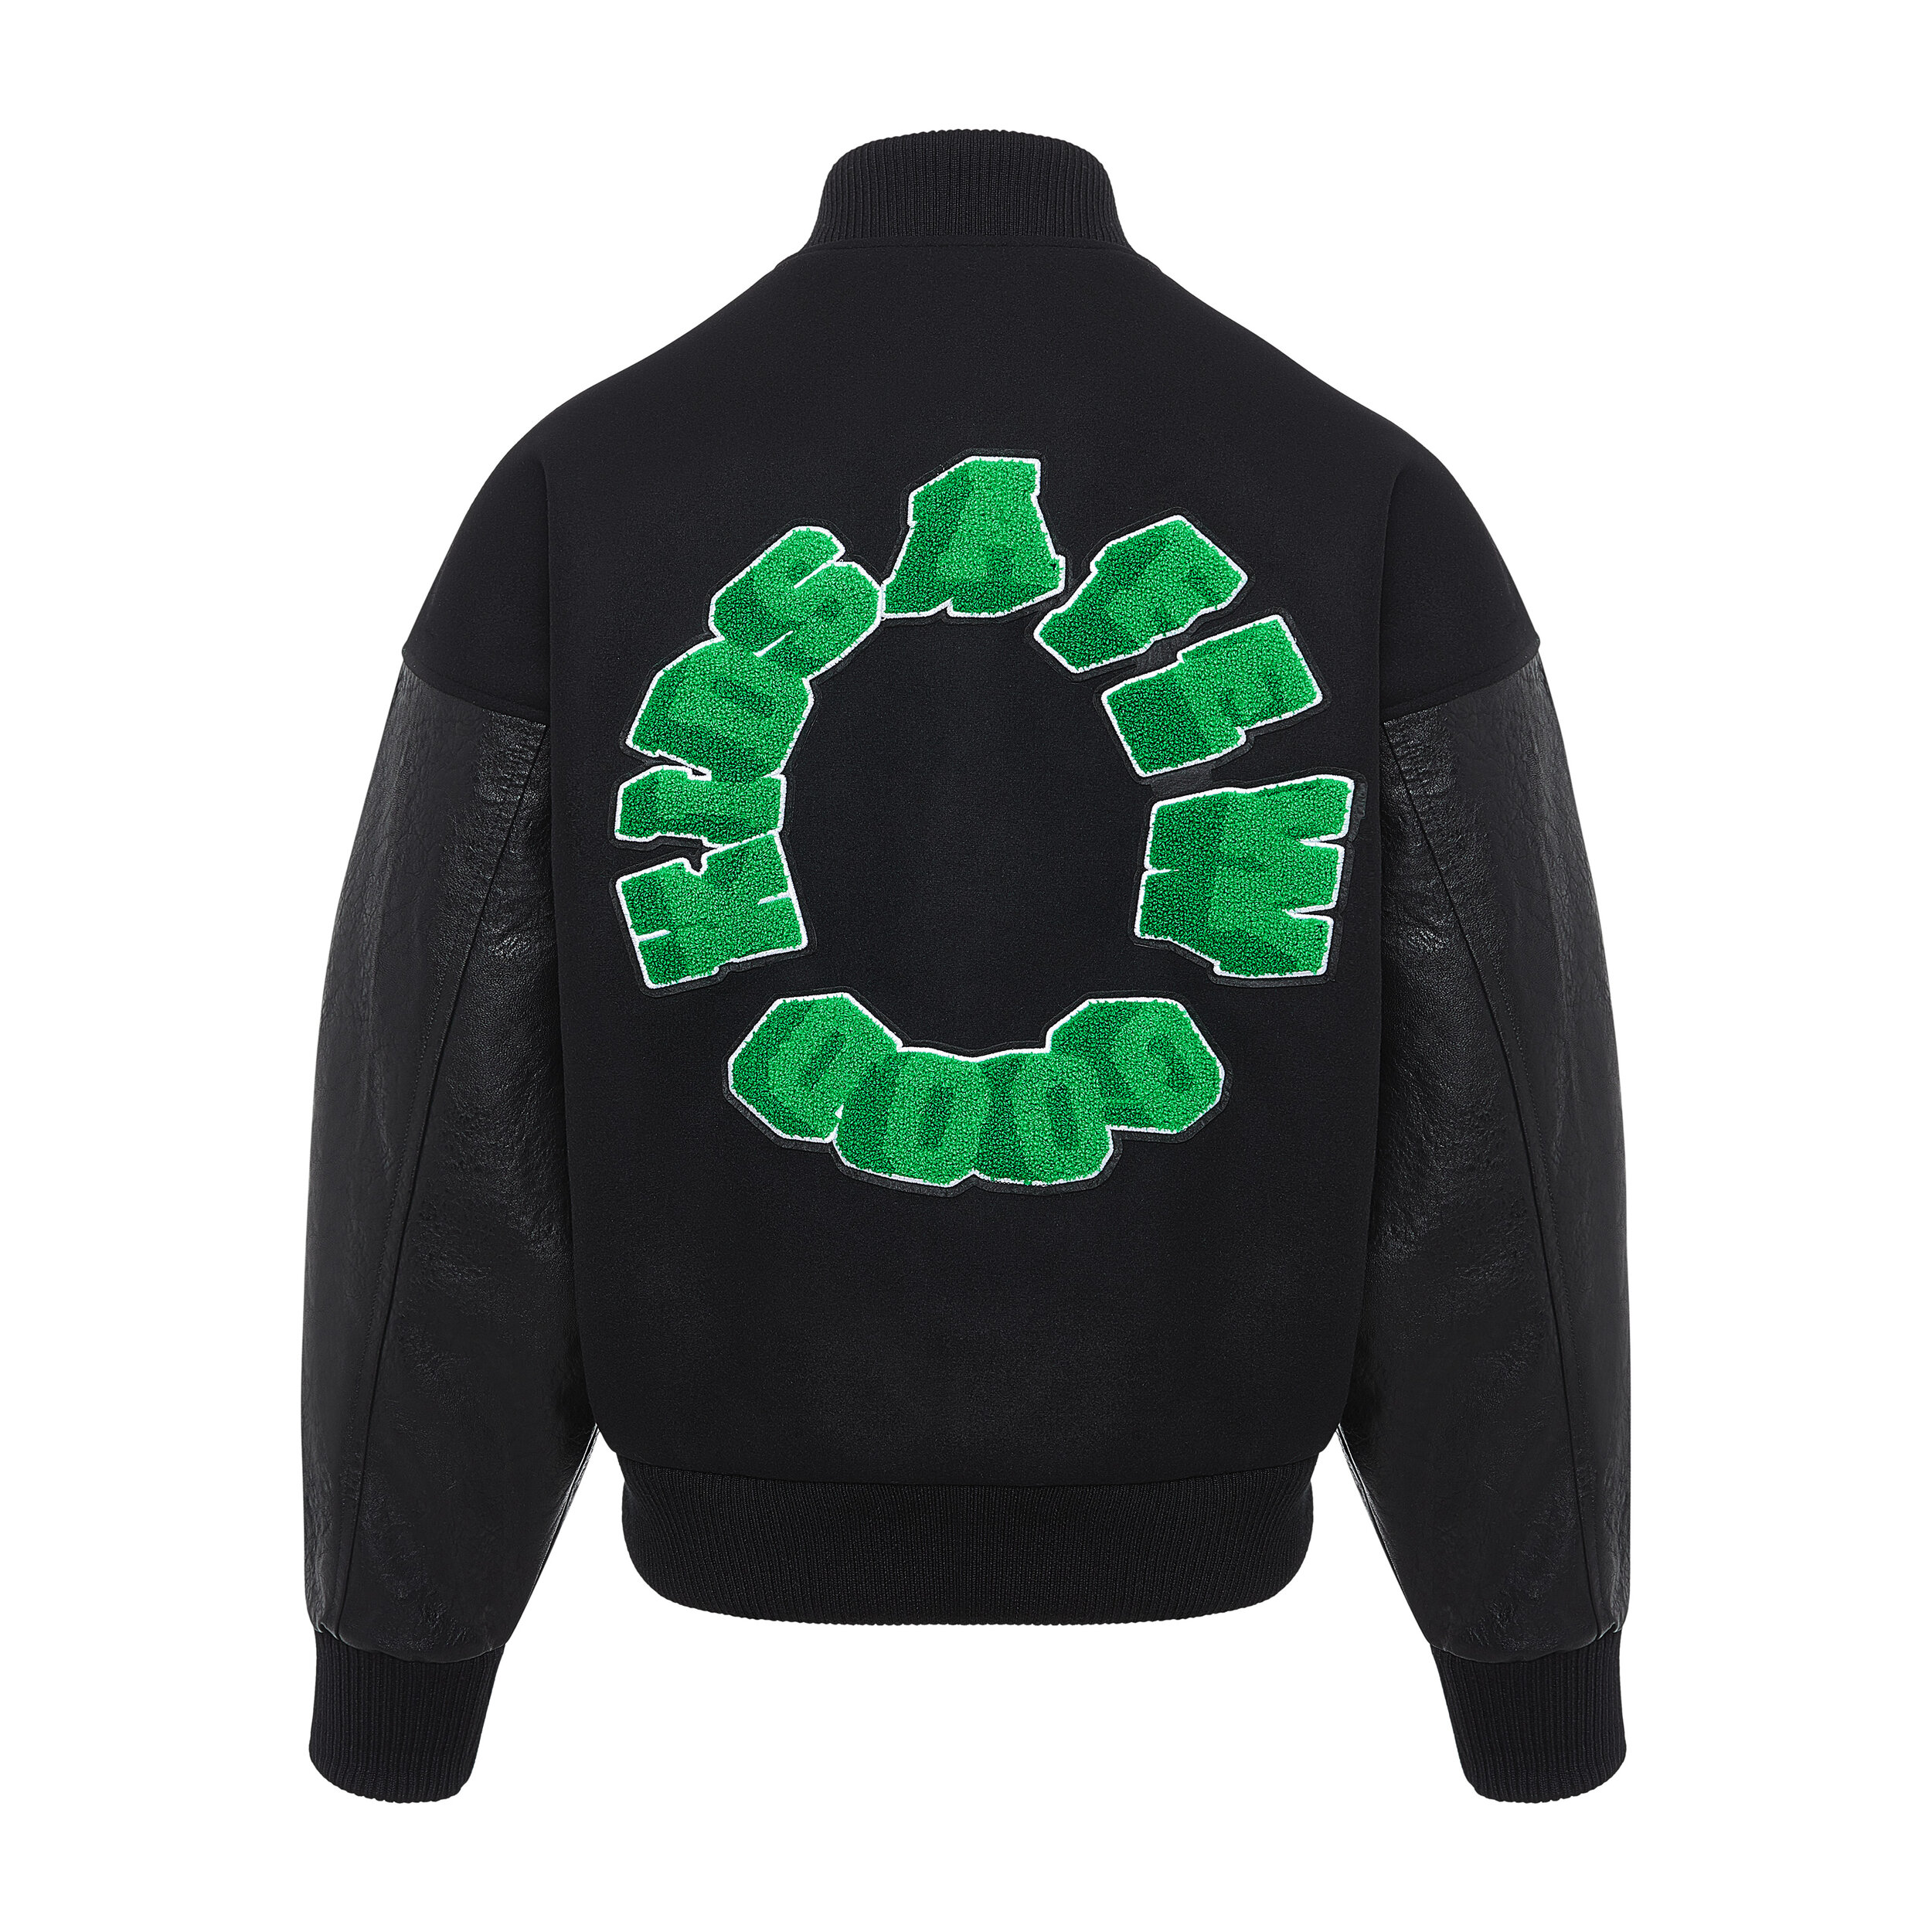 A Few Good Kids AFGK 3D Logo Varsity Jacket